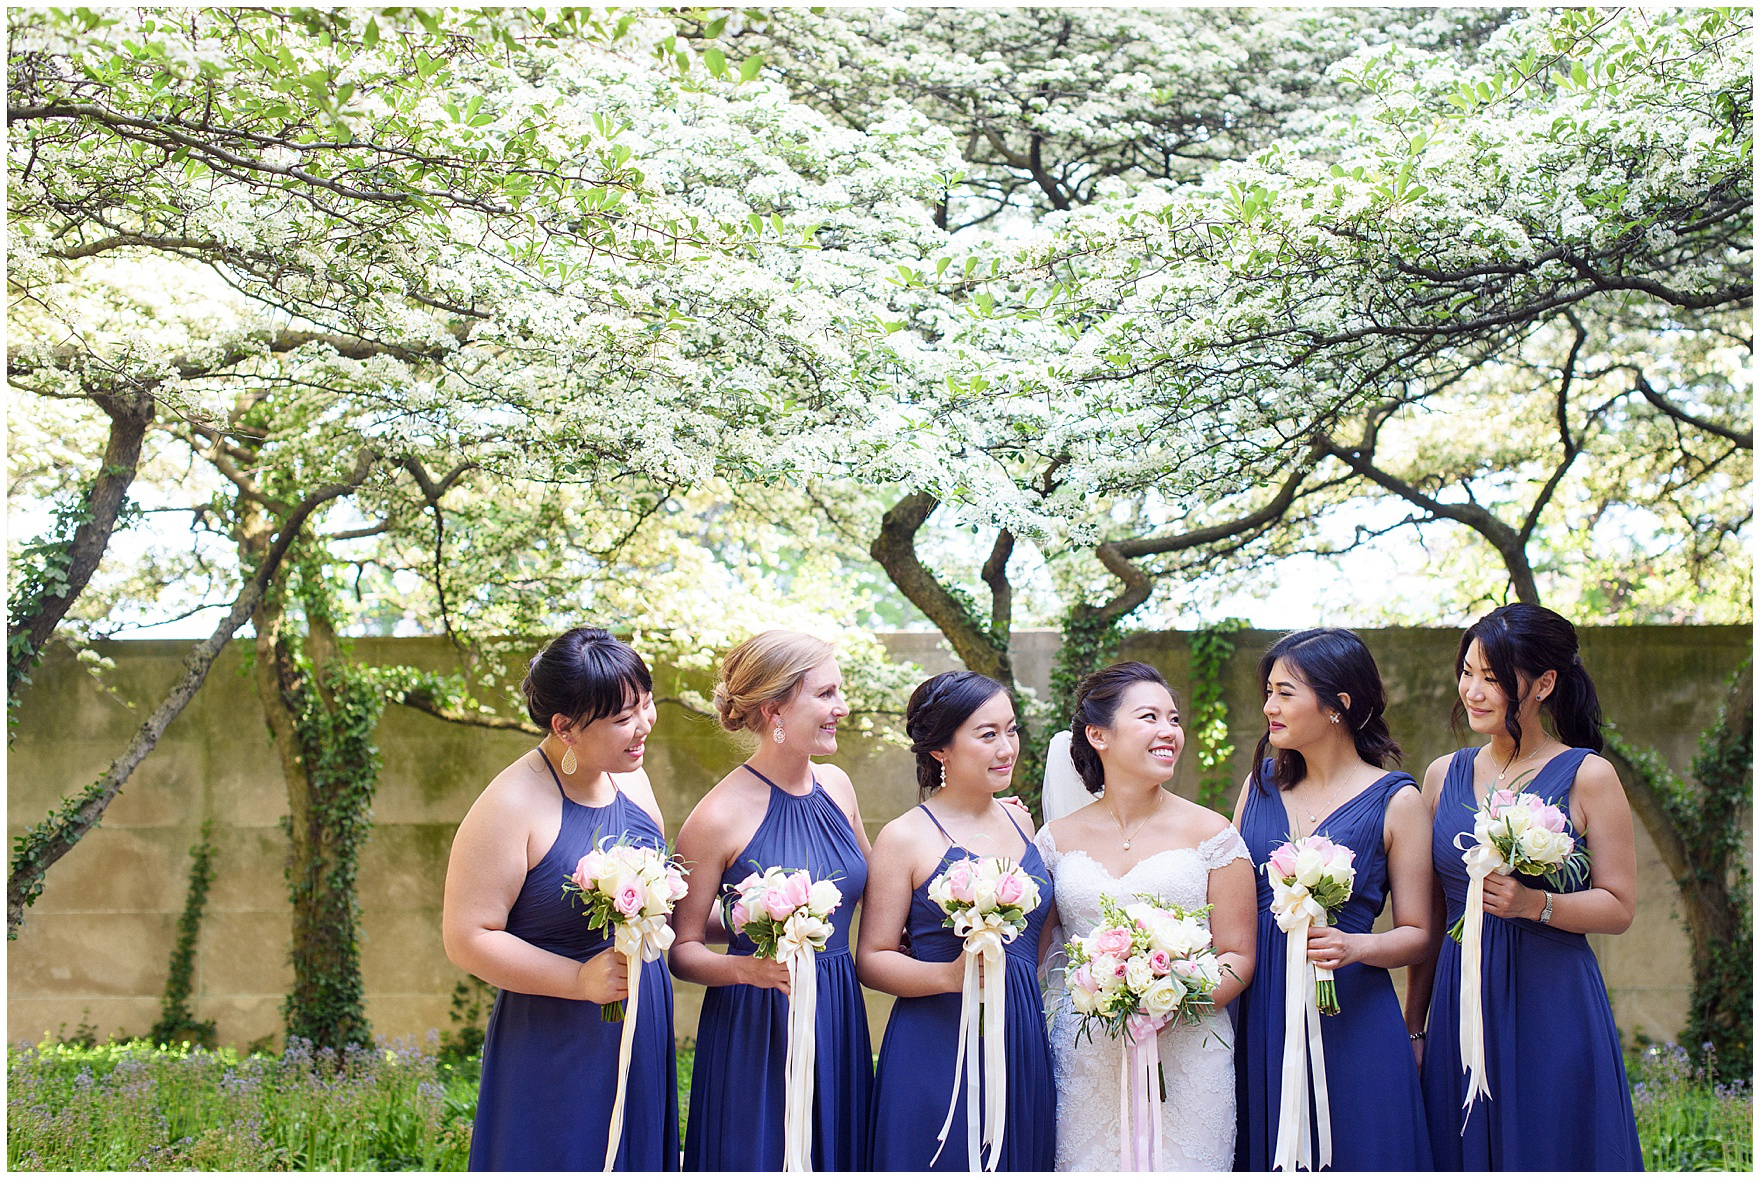 Bridesmaids pose in the South Gardens of the Art Institute of Chicago before a University Club of Chicago wedding.